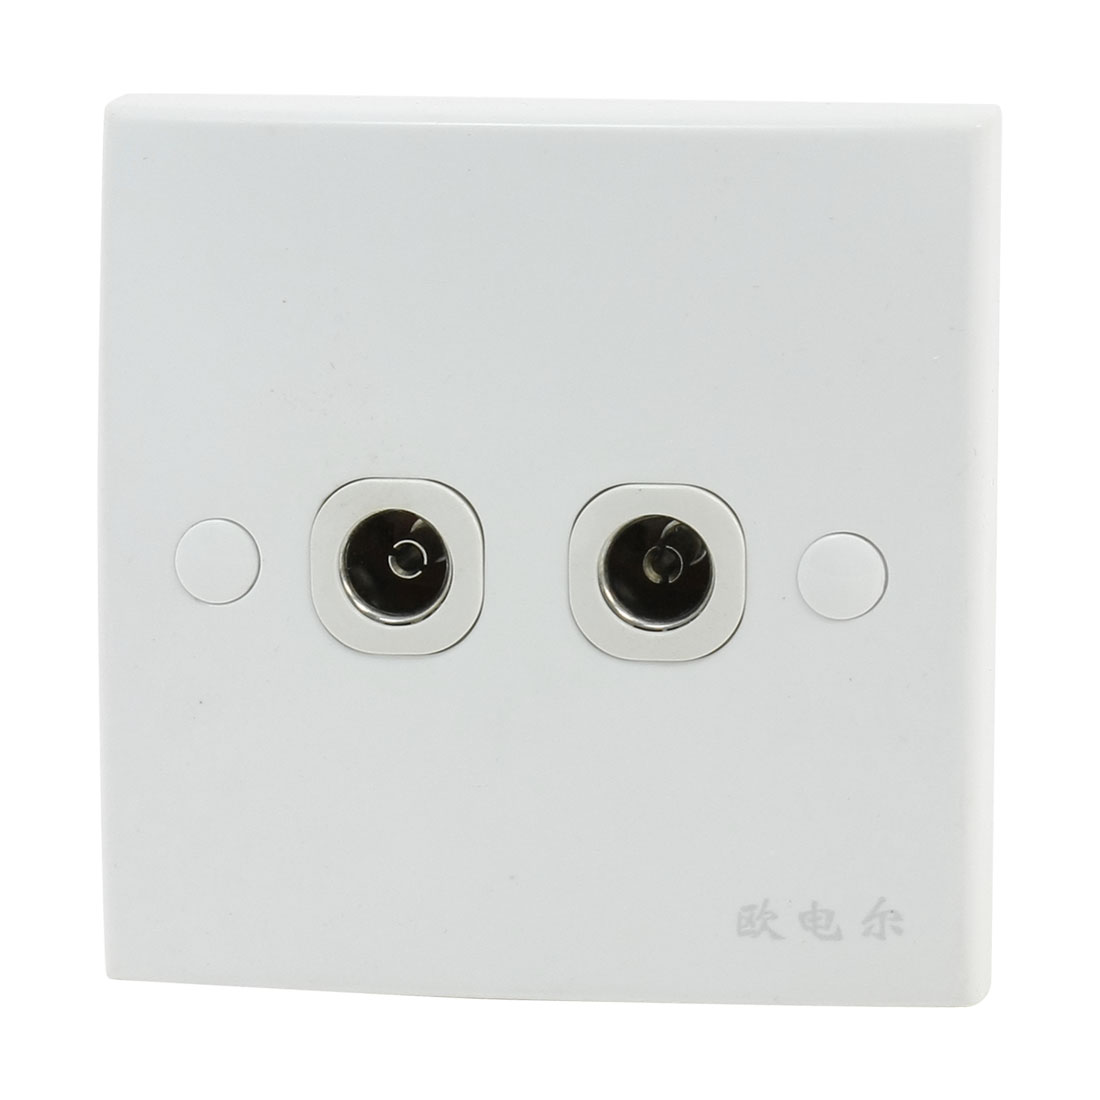 Home Plastic Shell PAL TV Antenna Double Port Socket Wallplate Panel